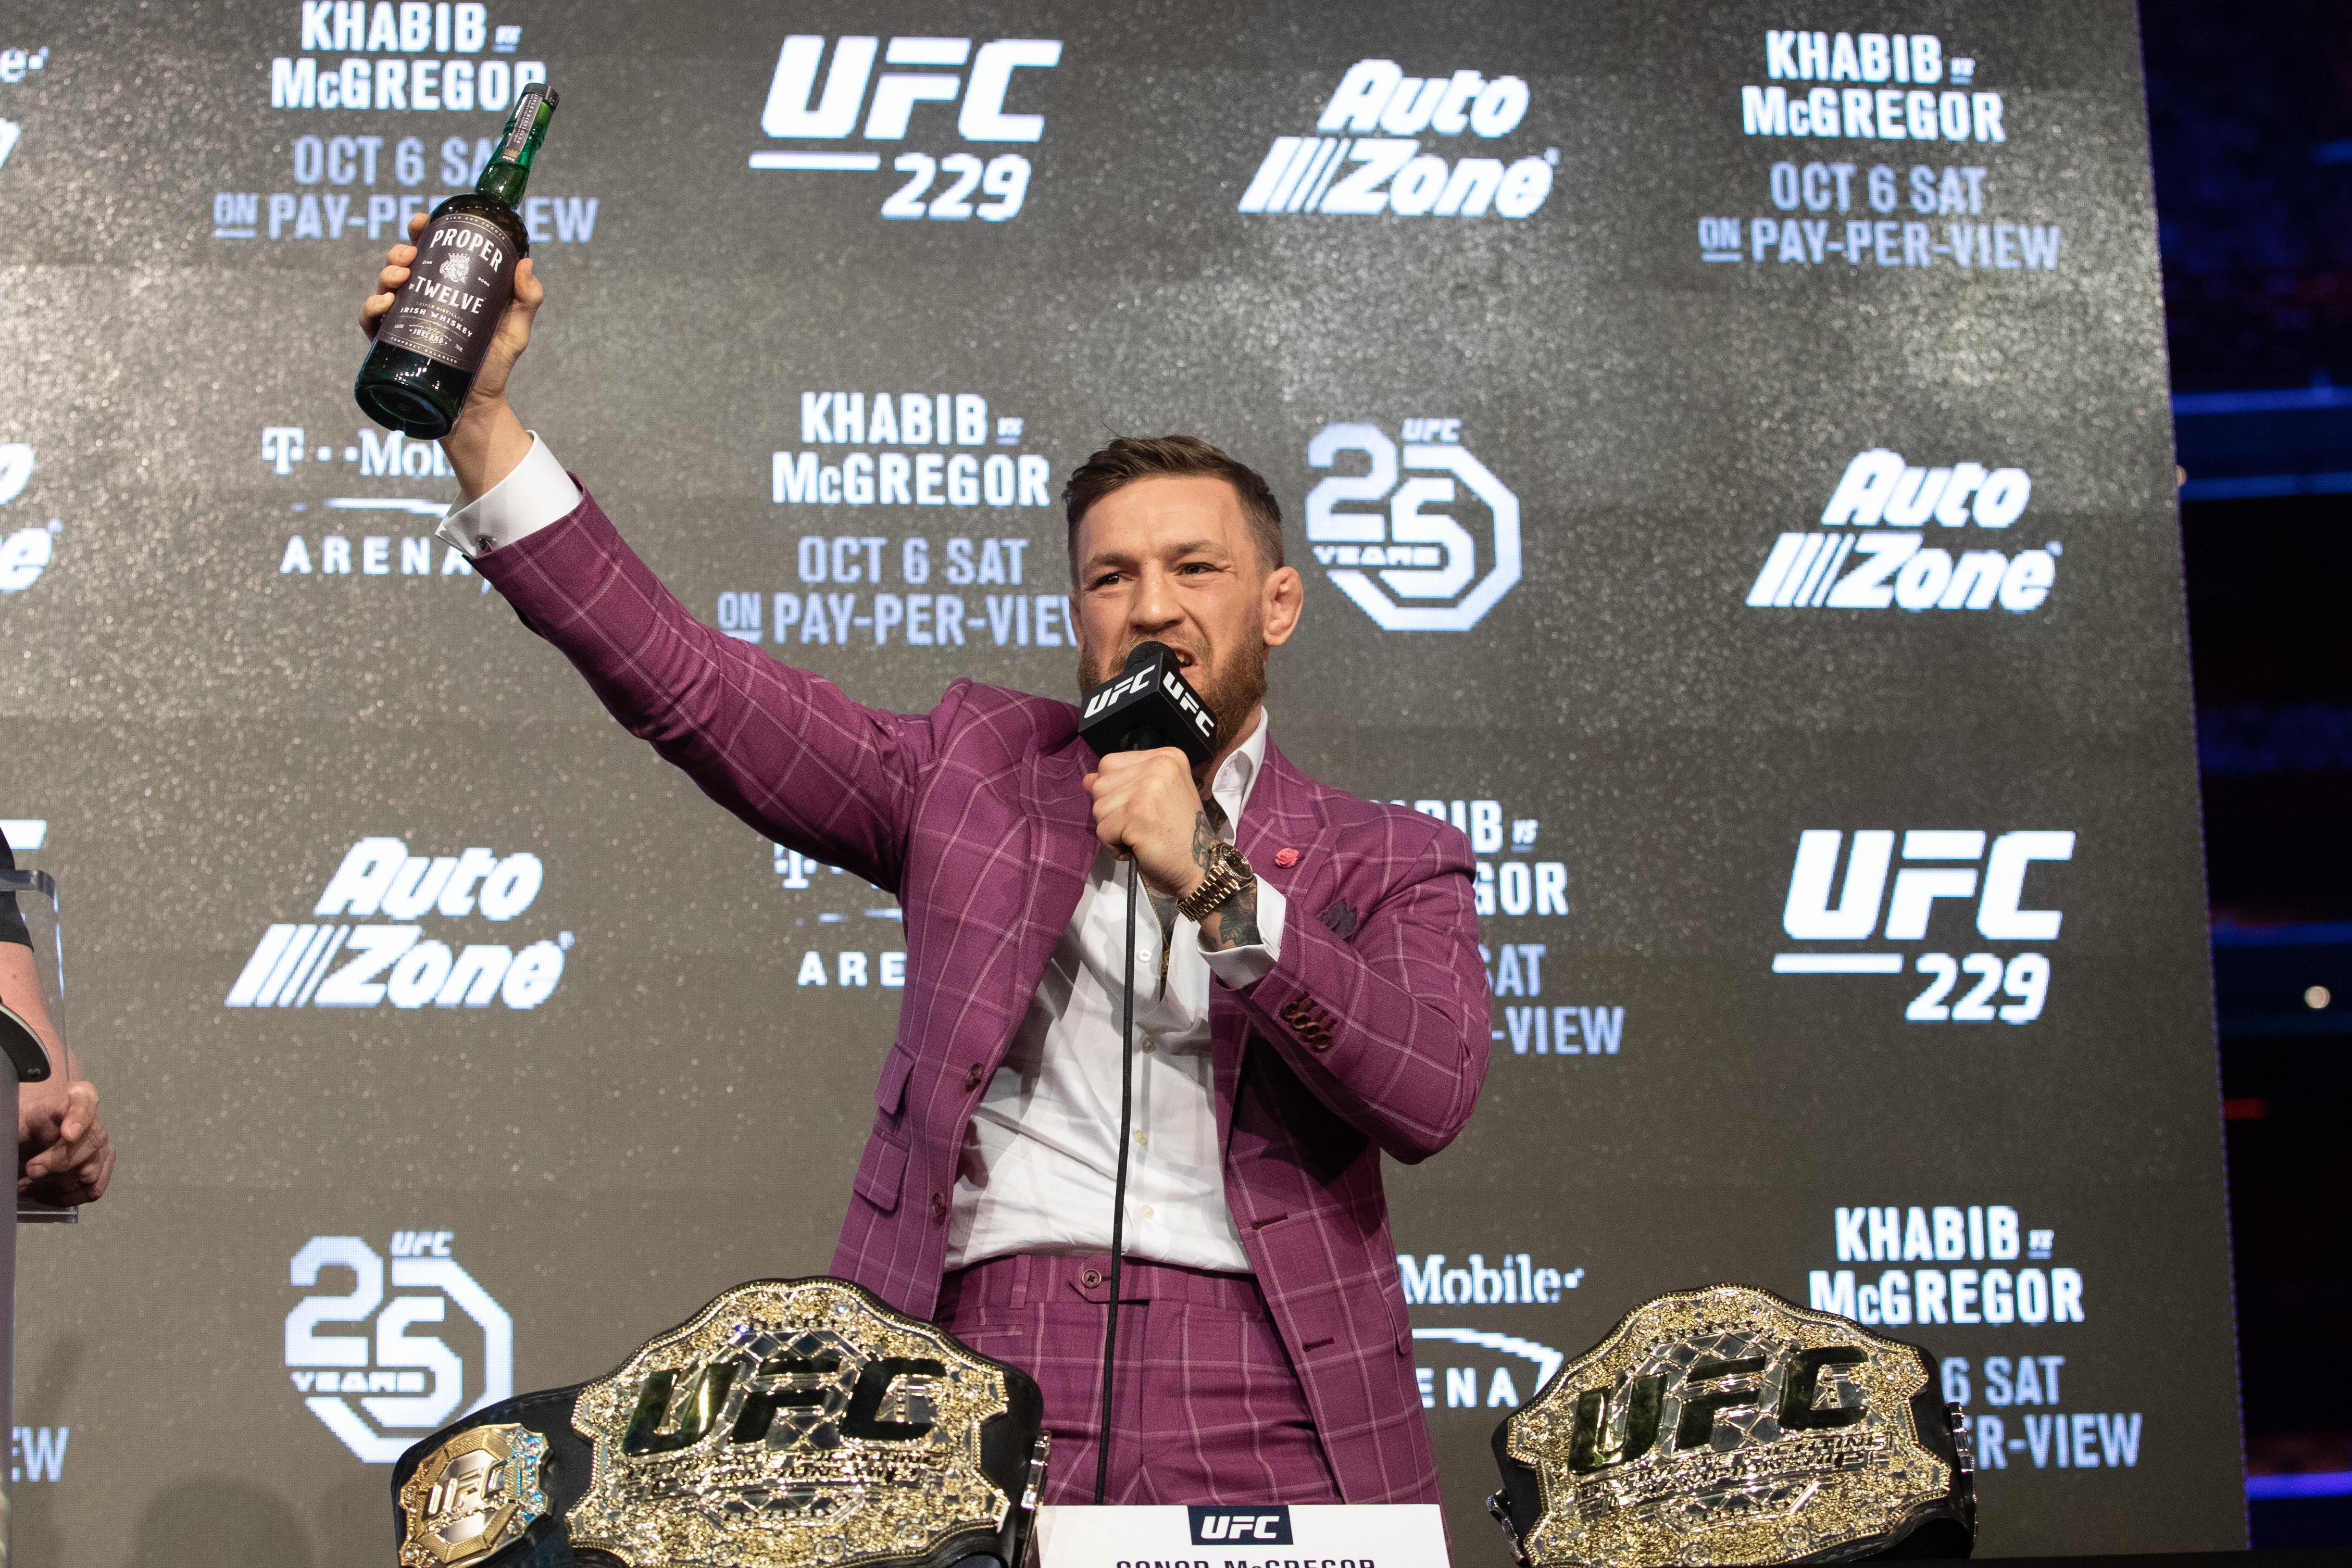 McGregor had a bottle of the whiskey at his explosive press conference with Khabib Nurmagomedov on Thursday night